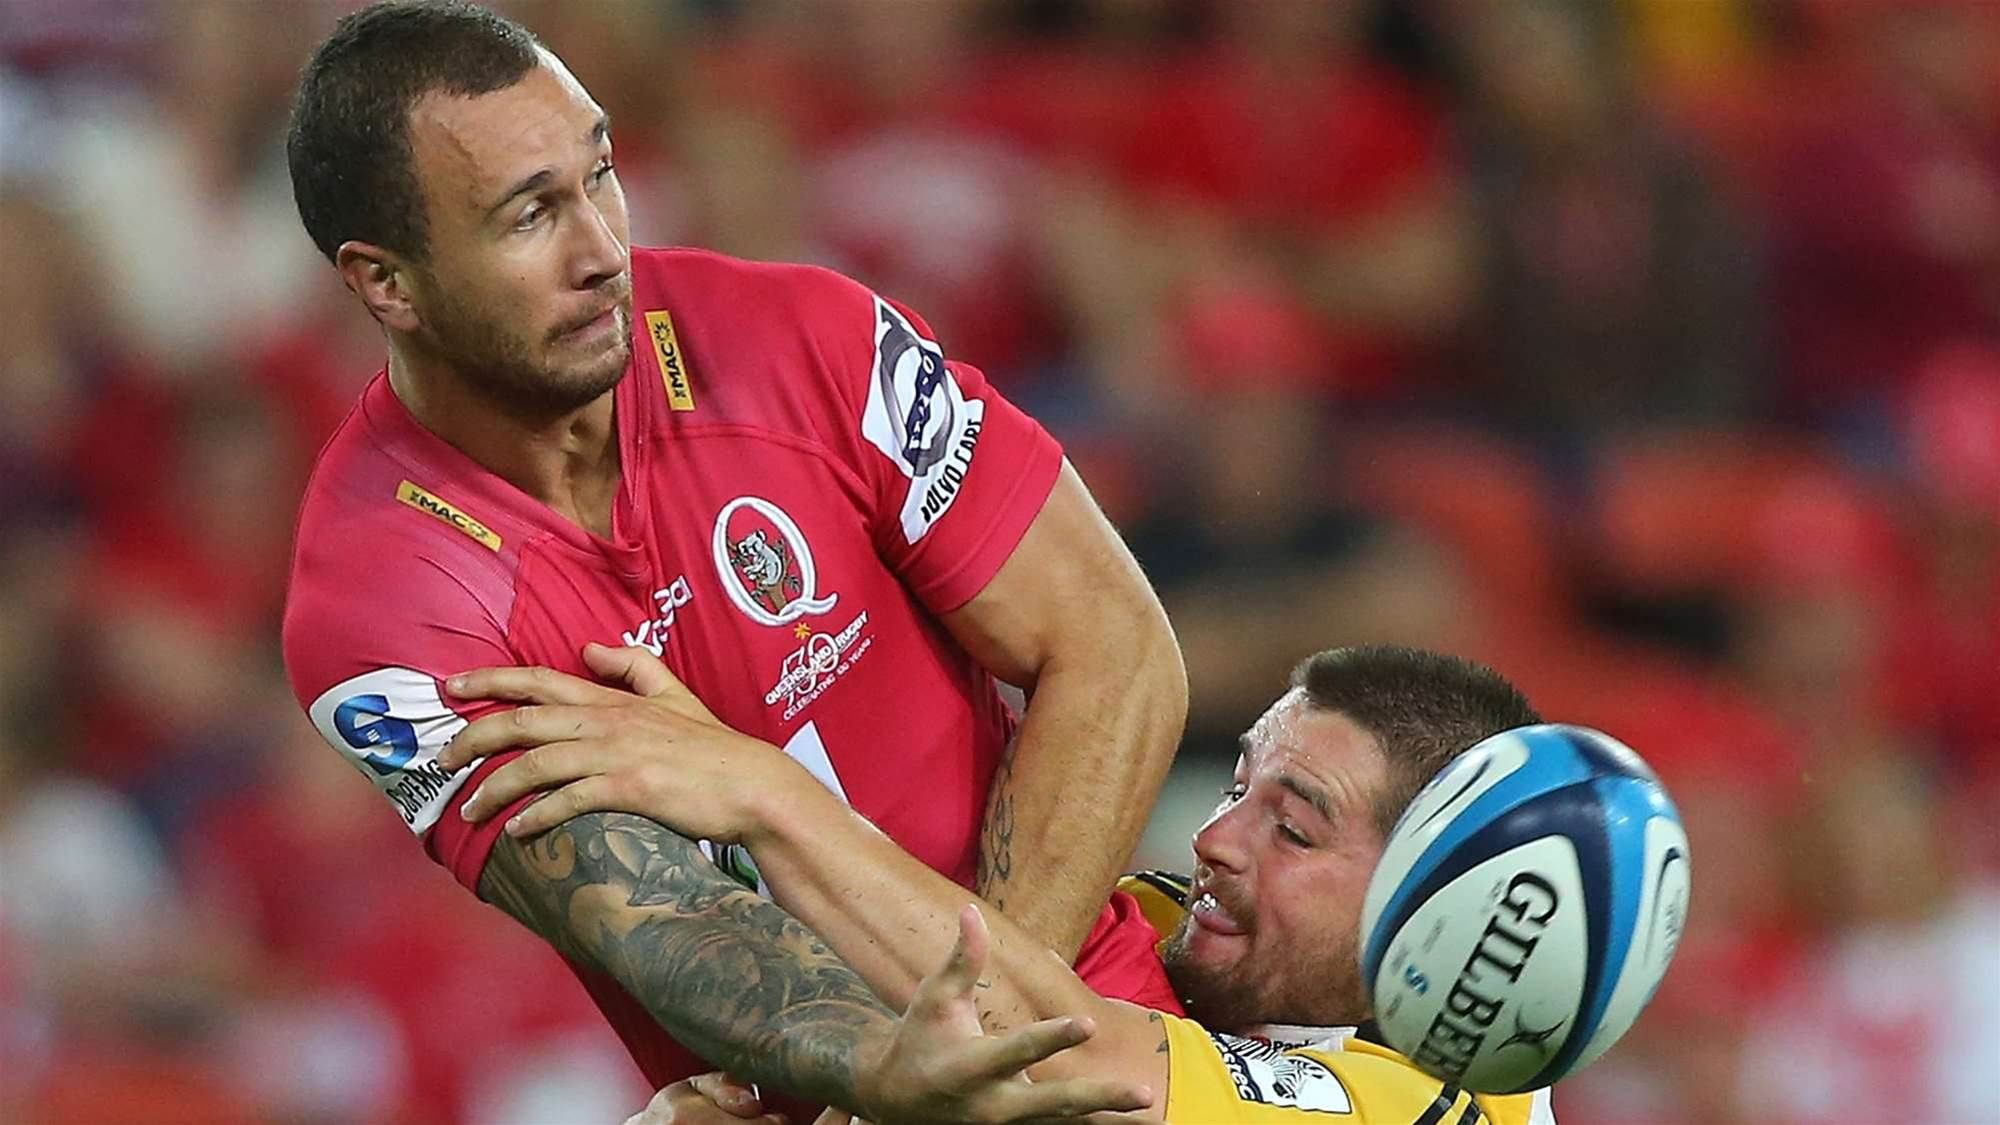 Cooper decides Super Rugby future